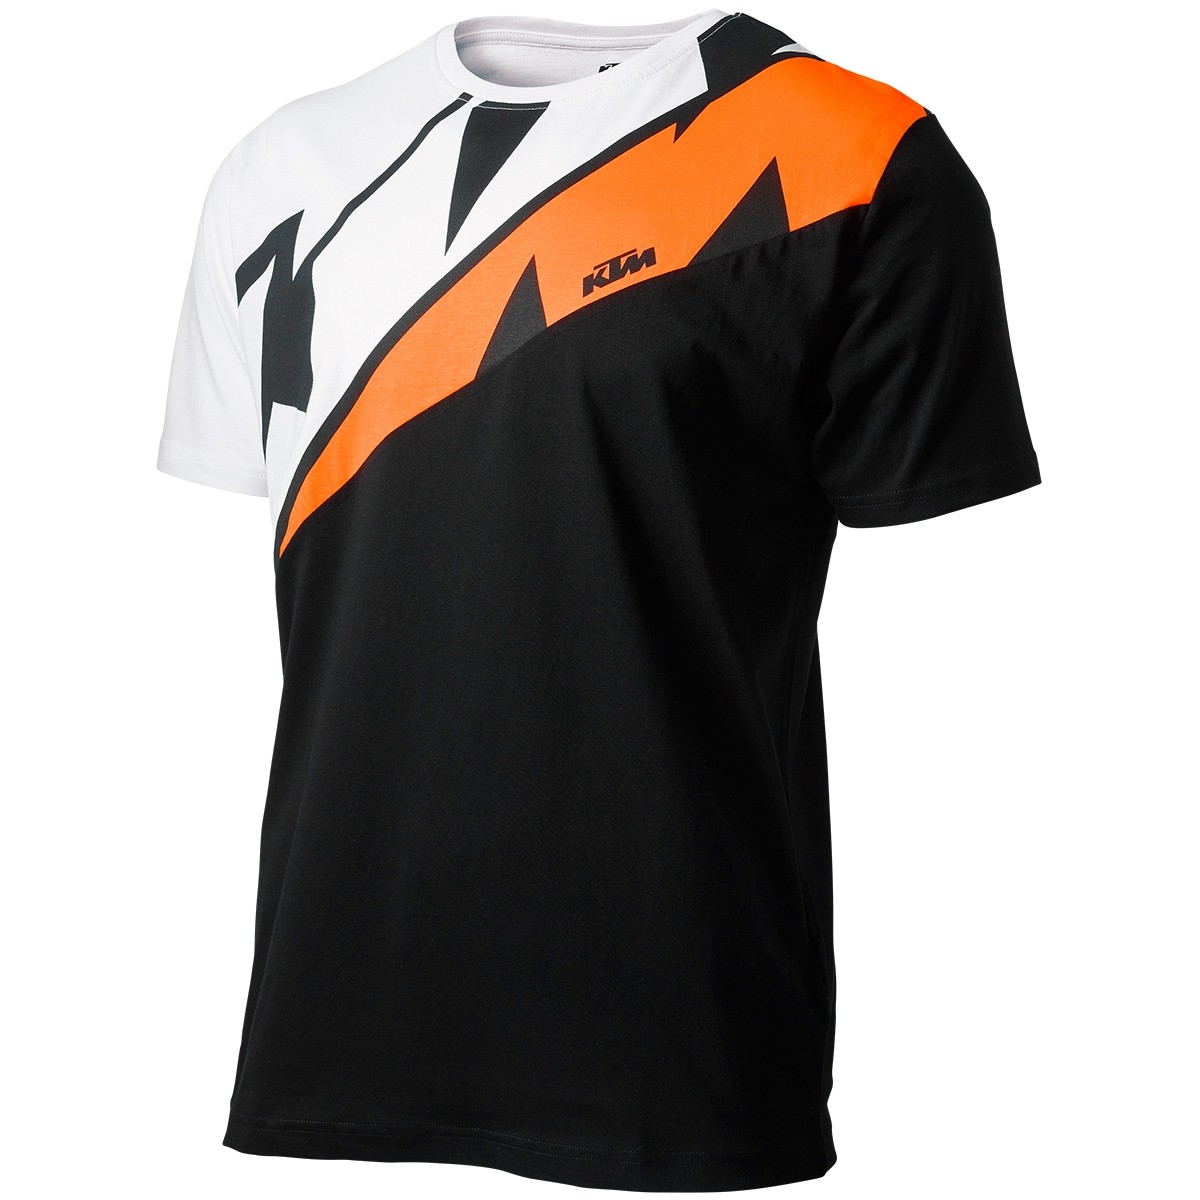 CAMISETA KTM RADICAL SLICED TEE